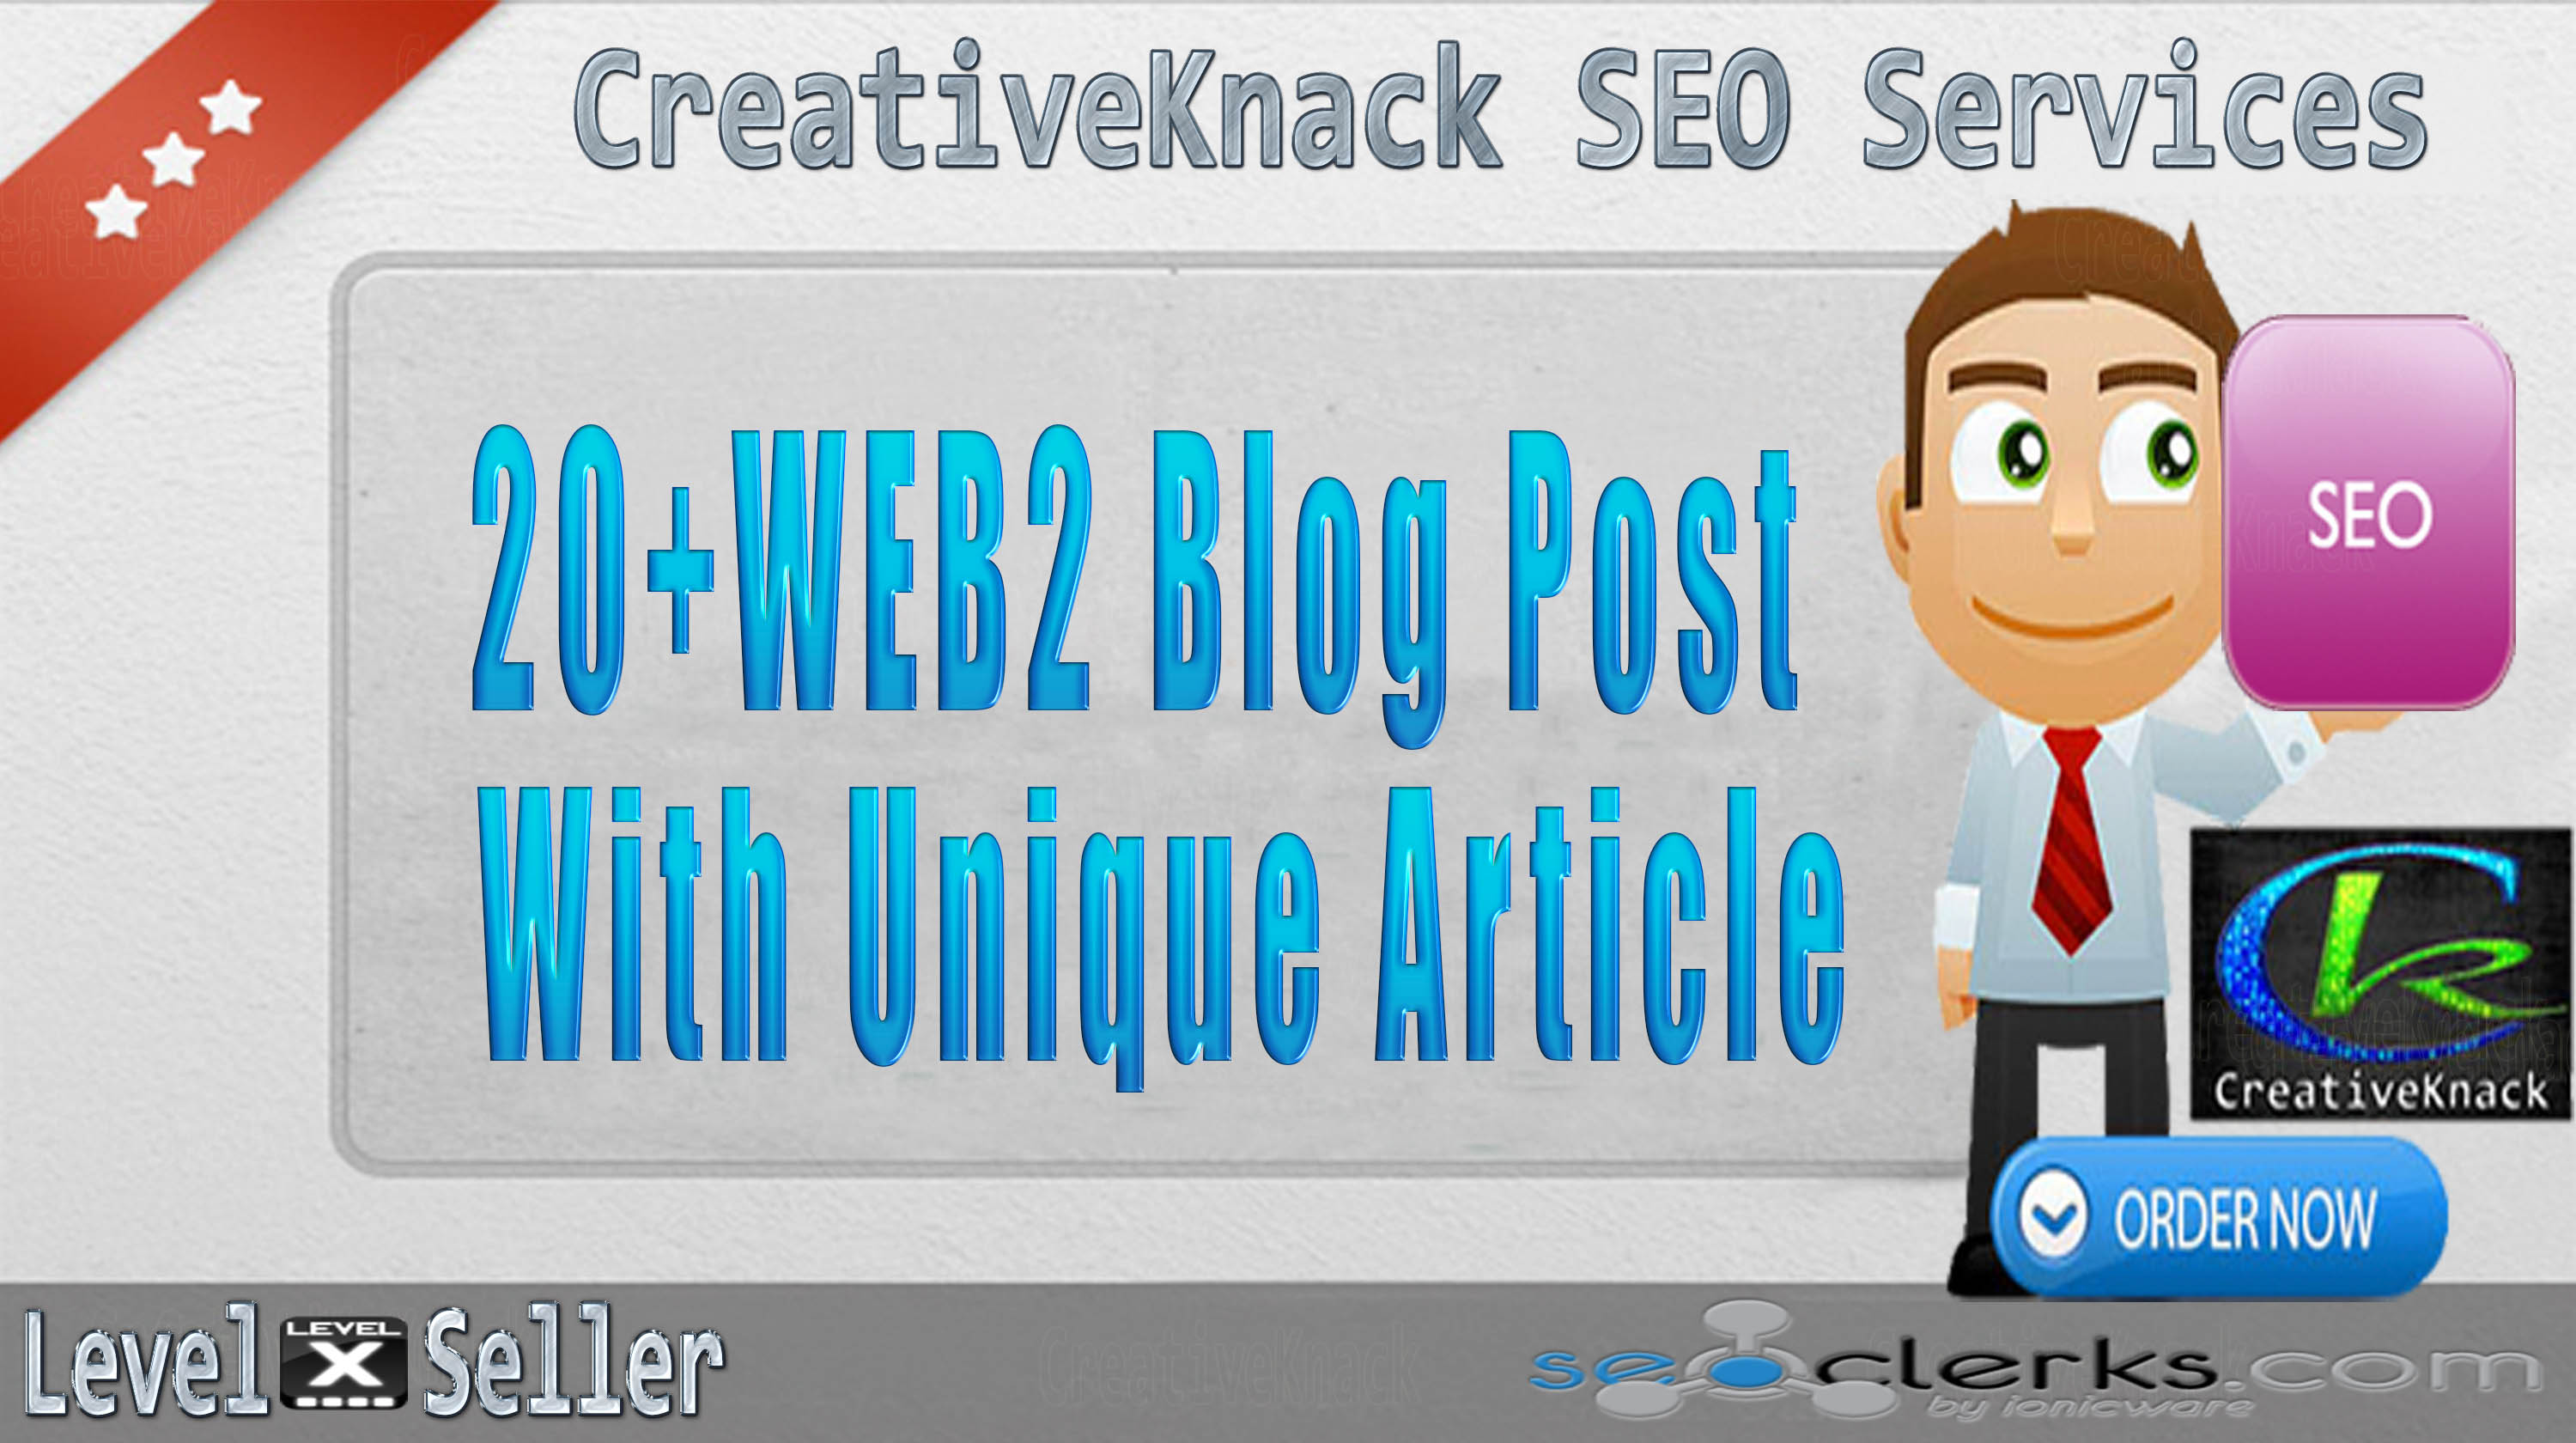 20+ High PR Web2 Blog Post With unique article only